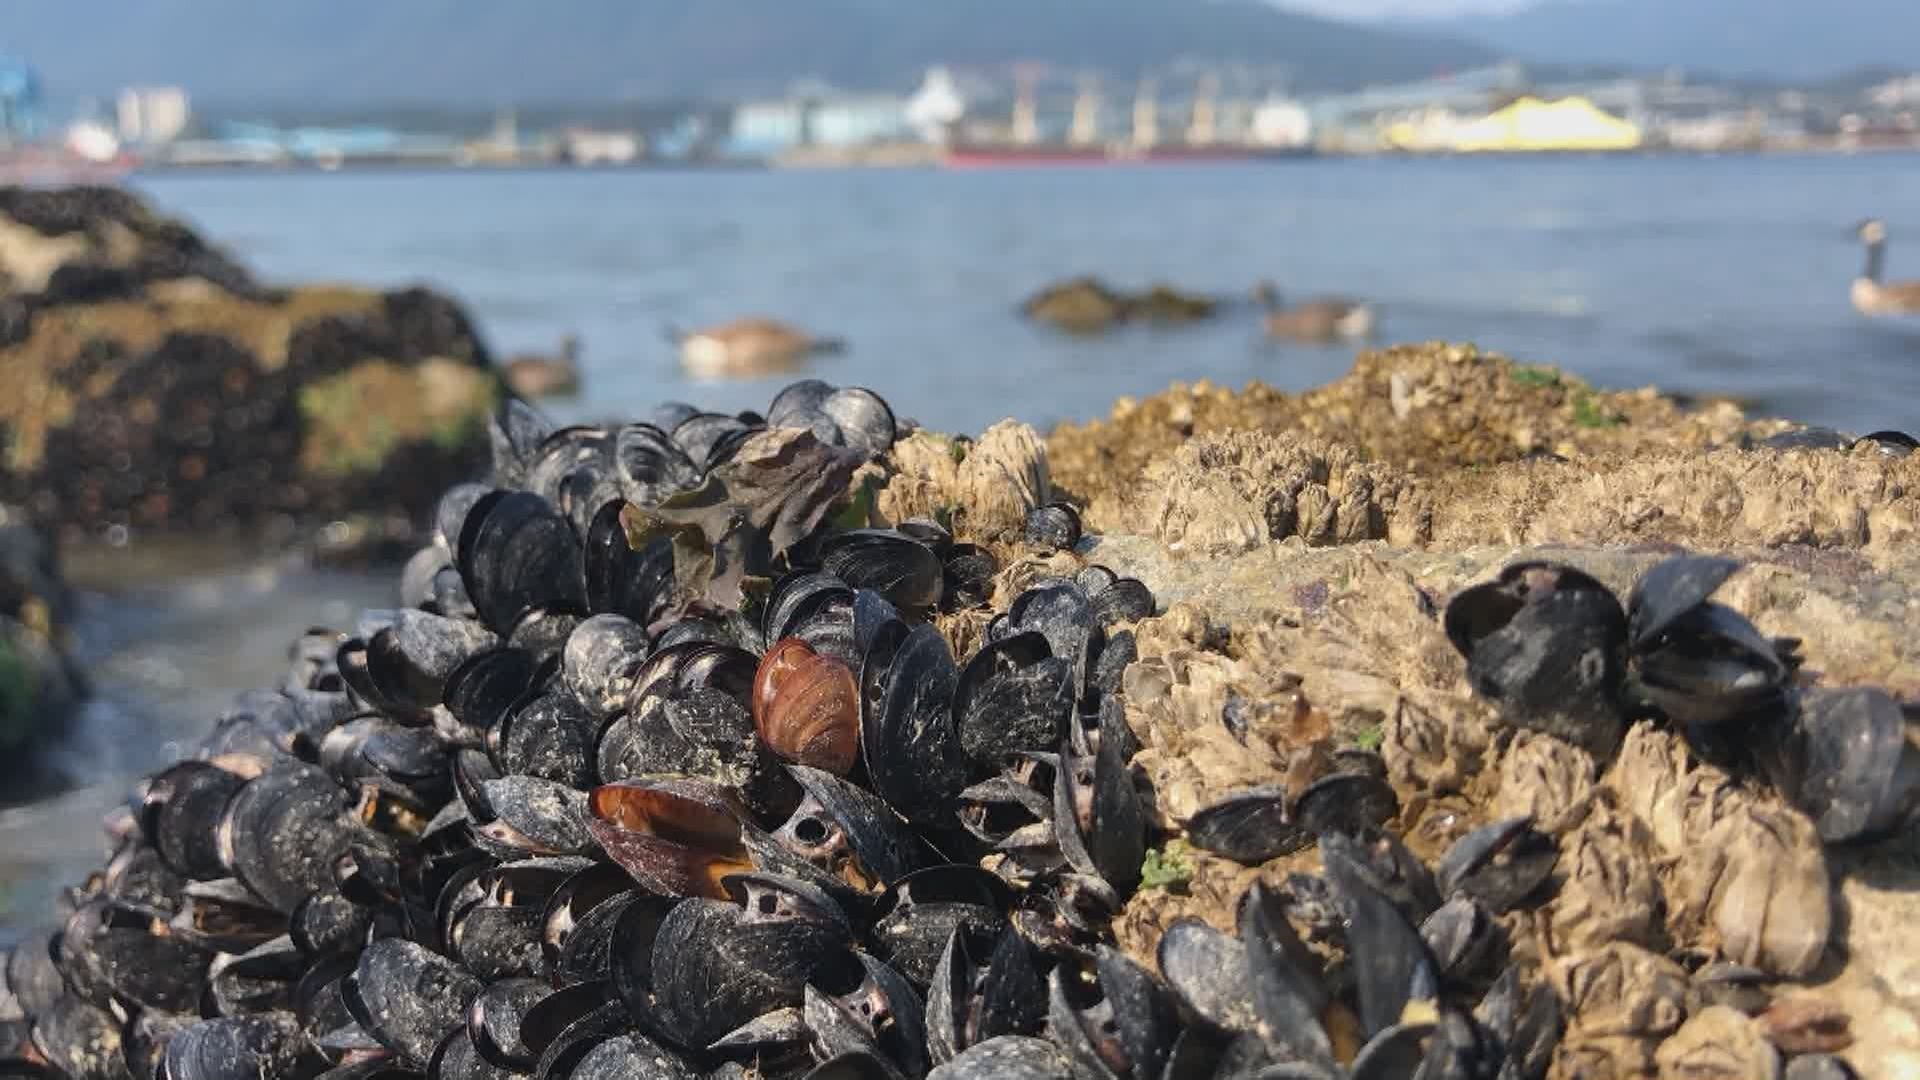 Up to a billion seashore creatures were cooked to death during B.C. heat  wave, researcher says - BC | Globalnews.ca